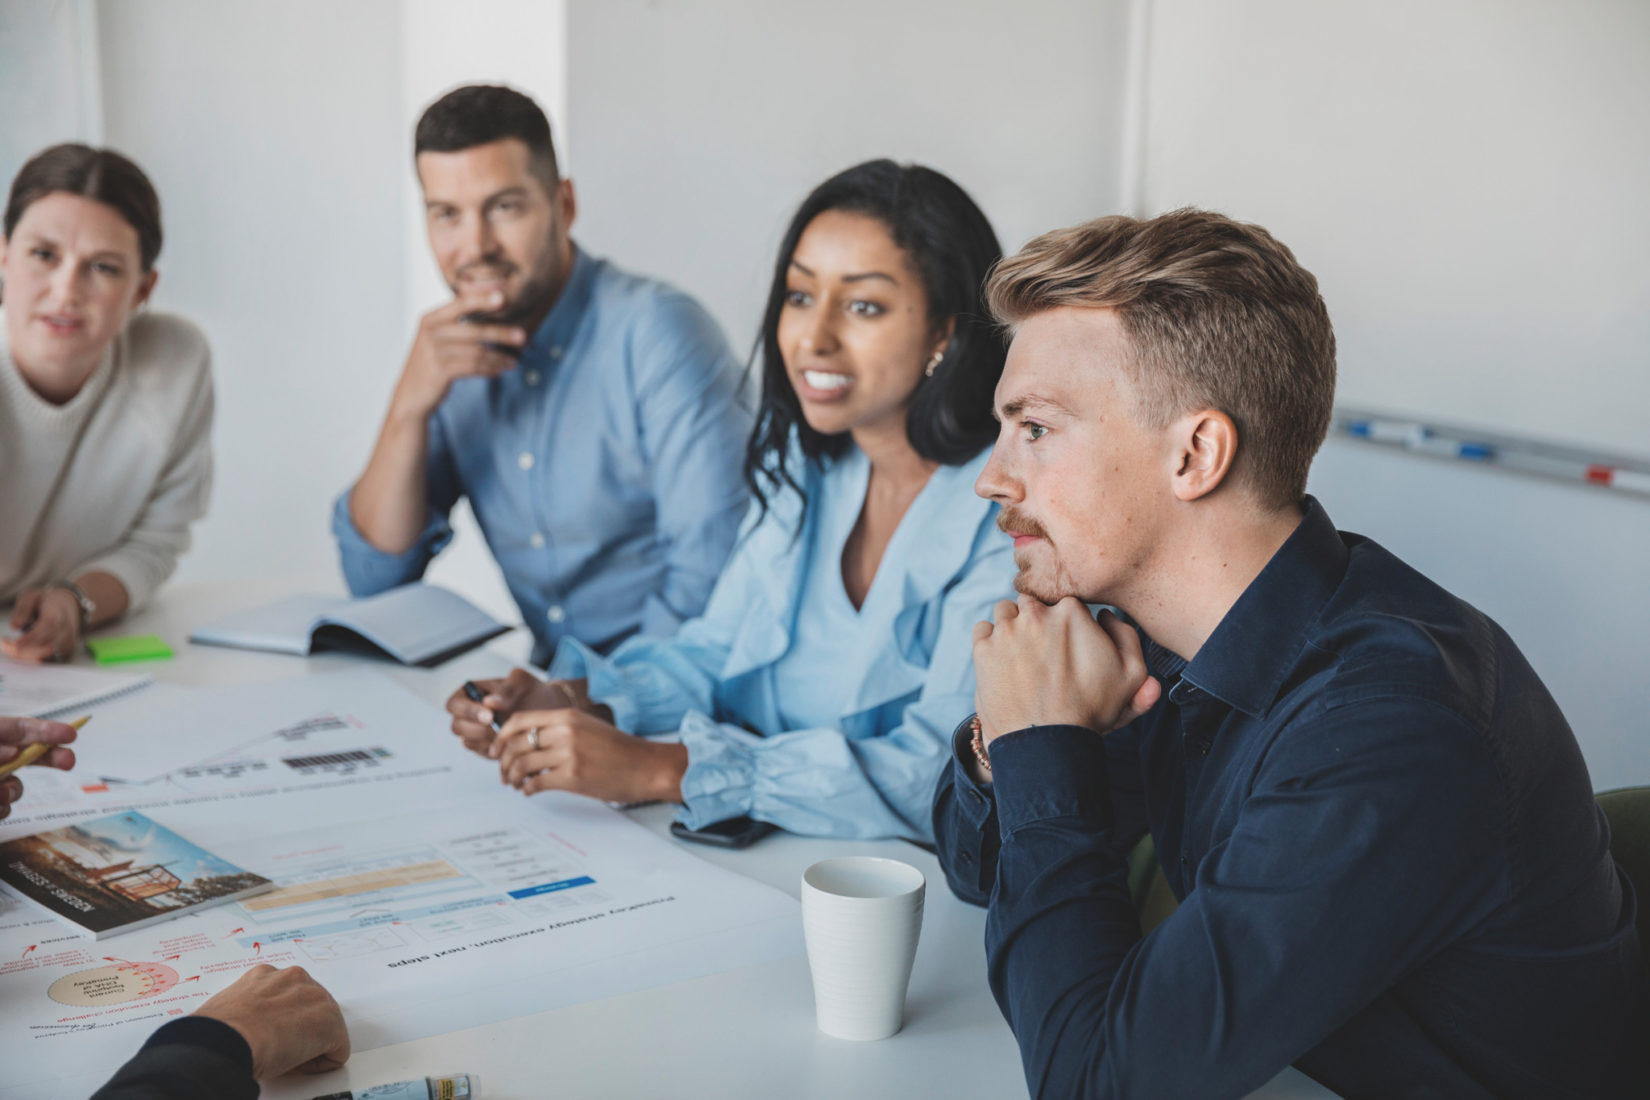 Four persons in a meeting room speaking to one another over a white table. They look very engaged. mix of men and women.